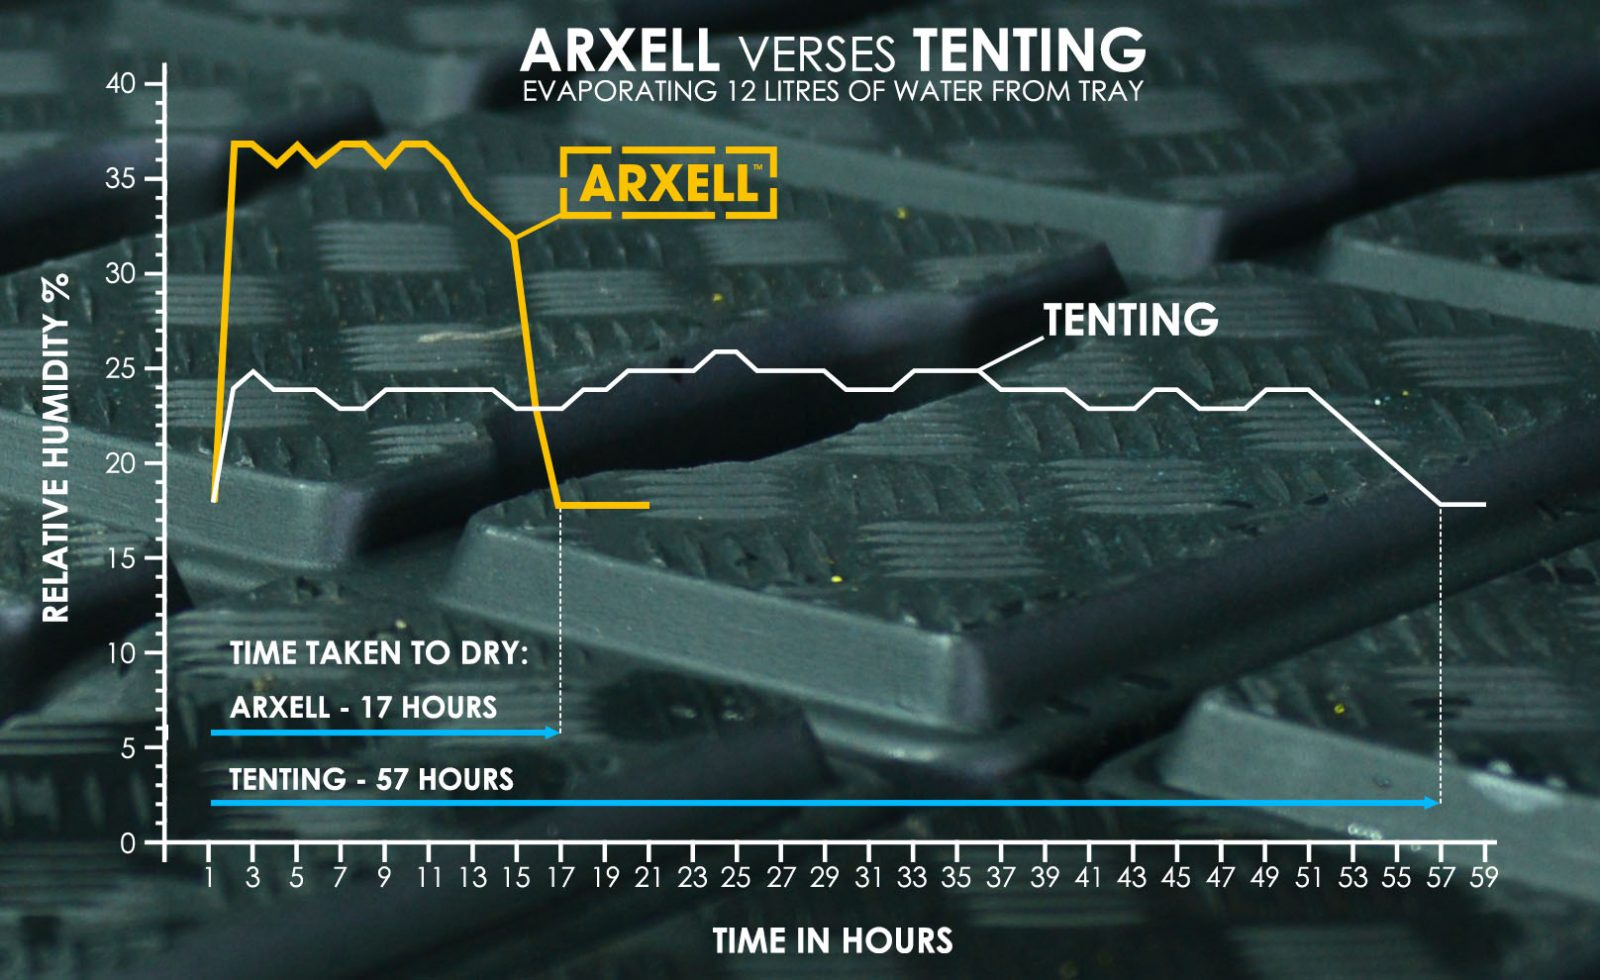 arxell-vs-tenting-graph-without-info-new